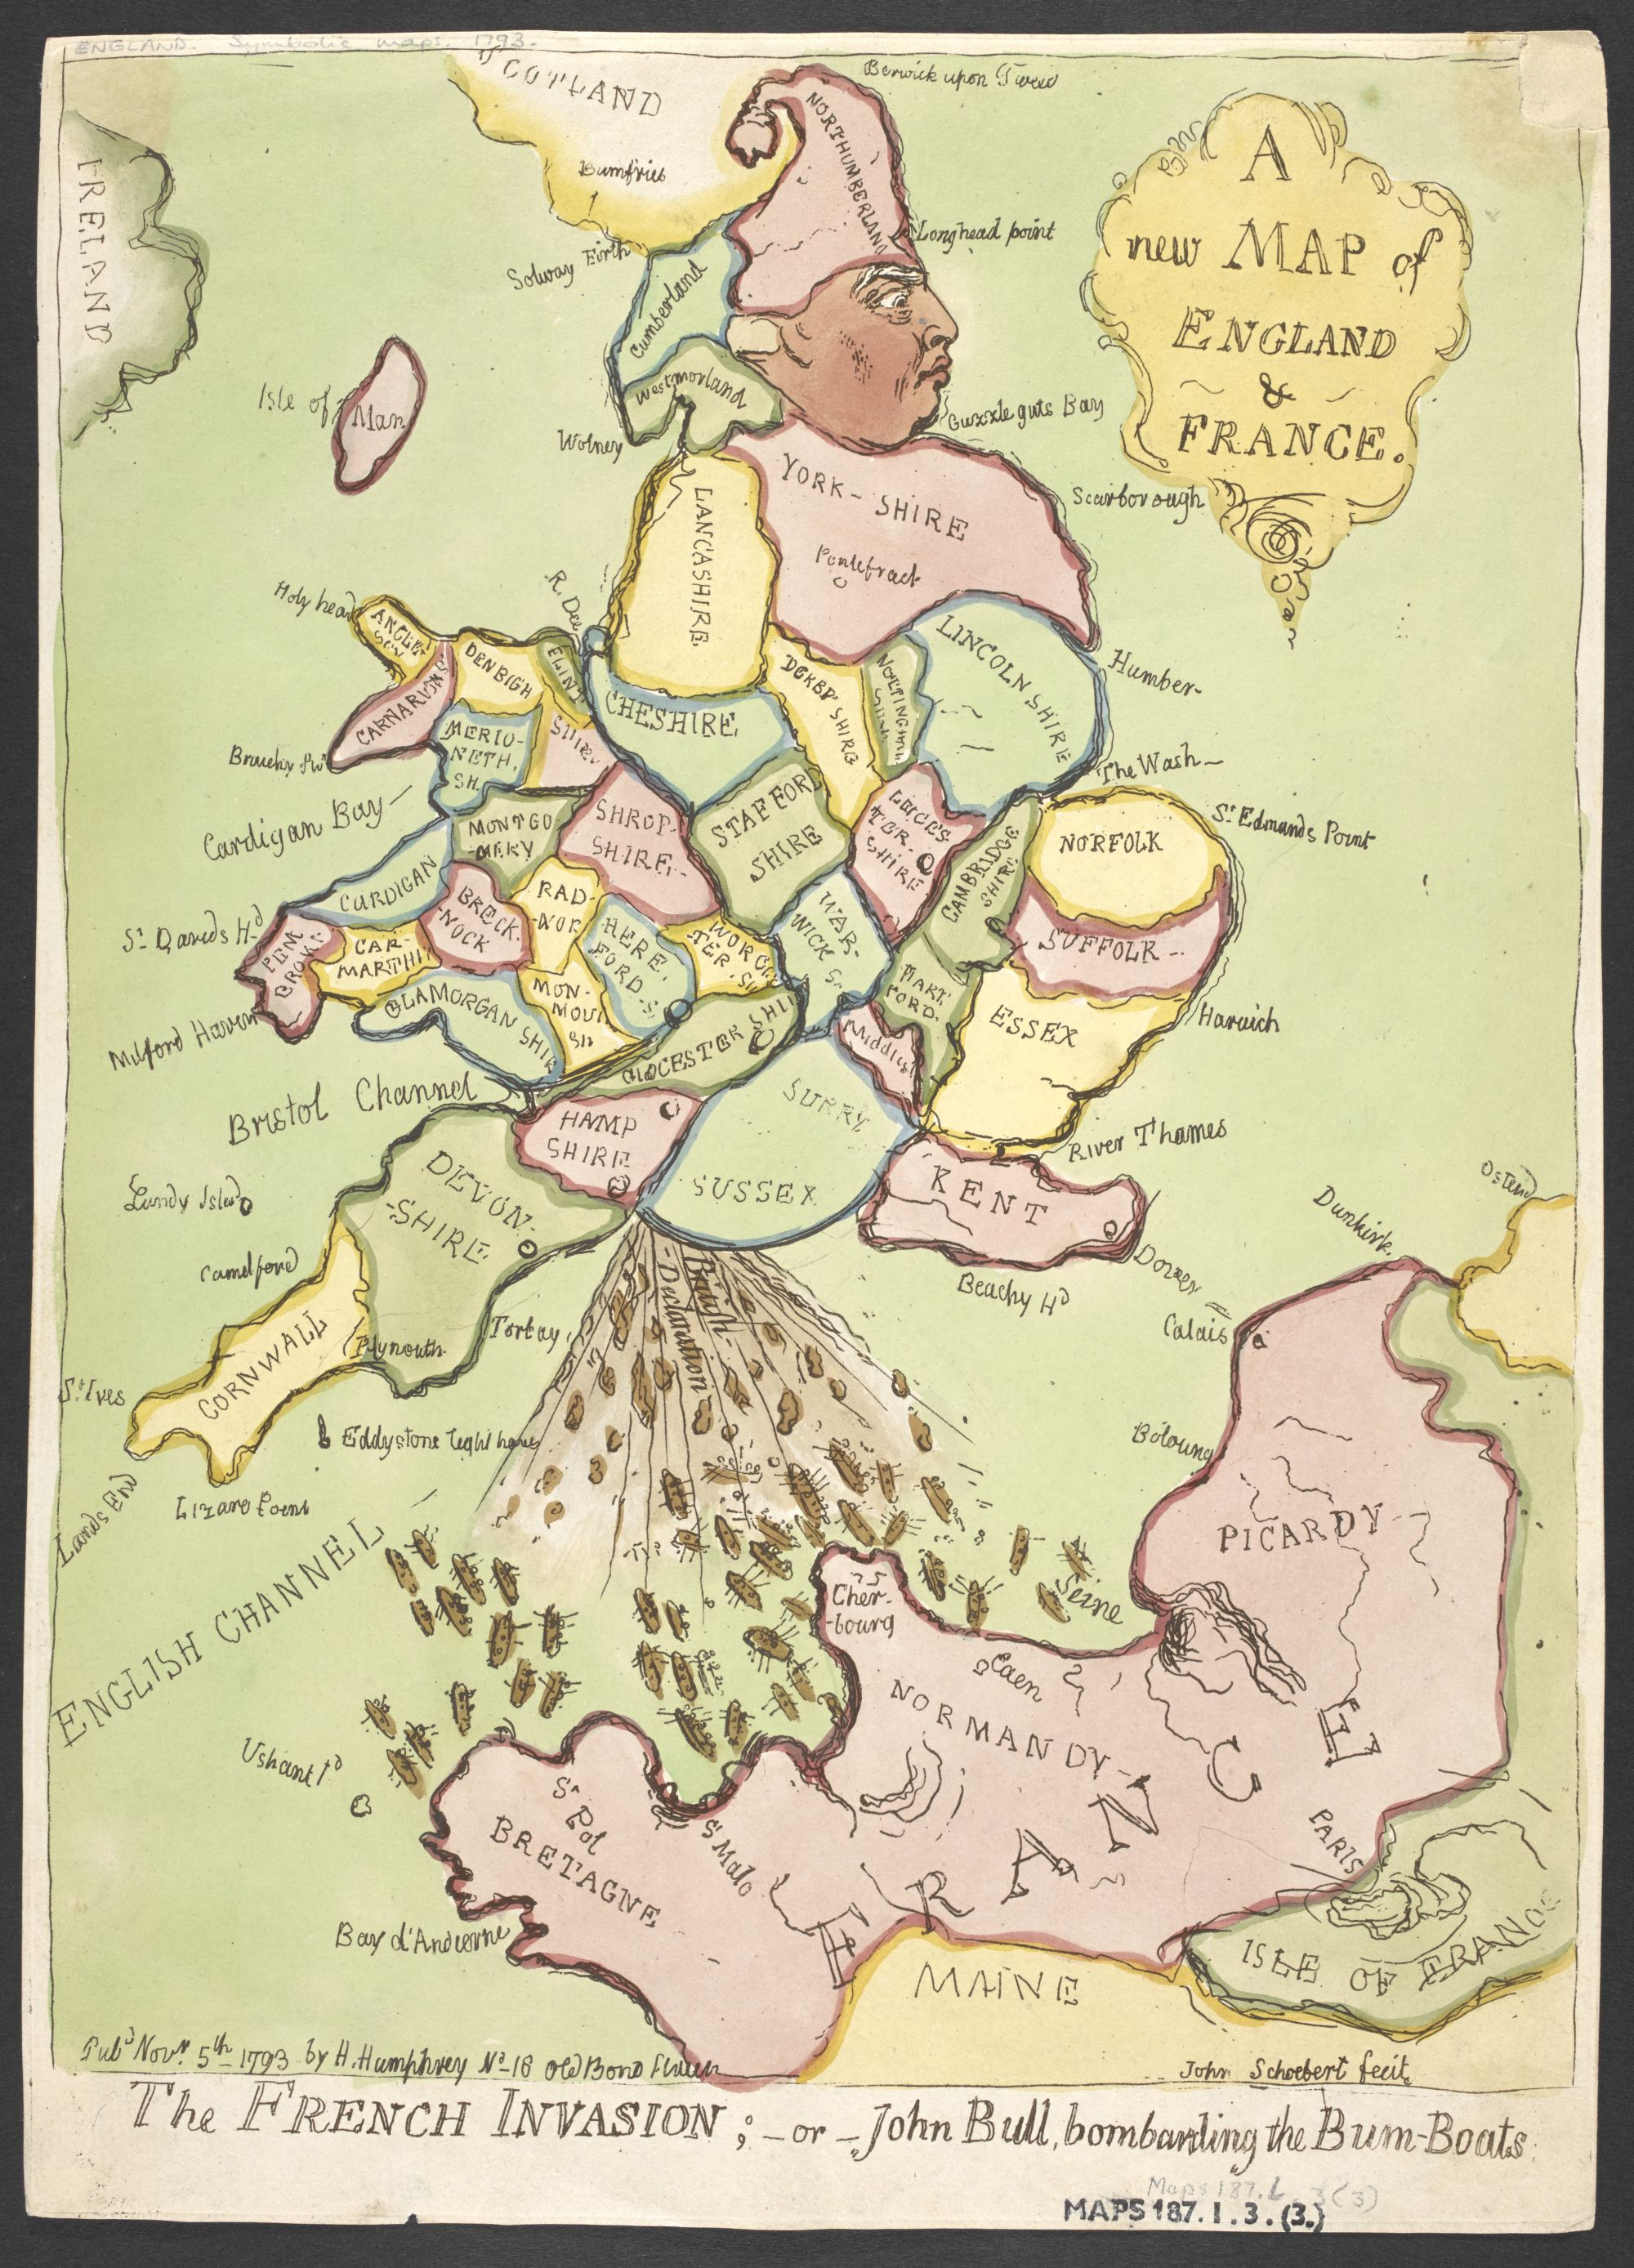 Map Of England To France.A New Map Of England France The French Invasion British Library